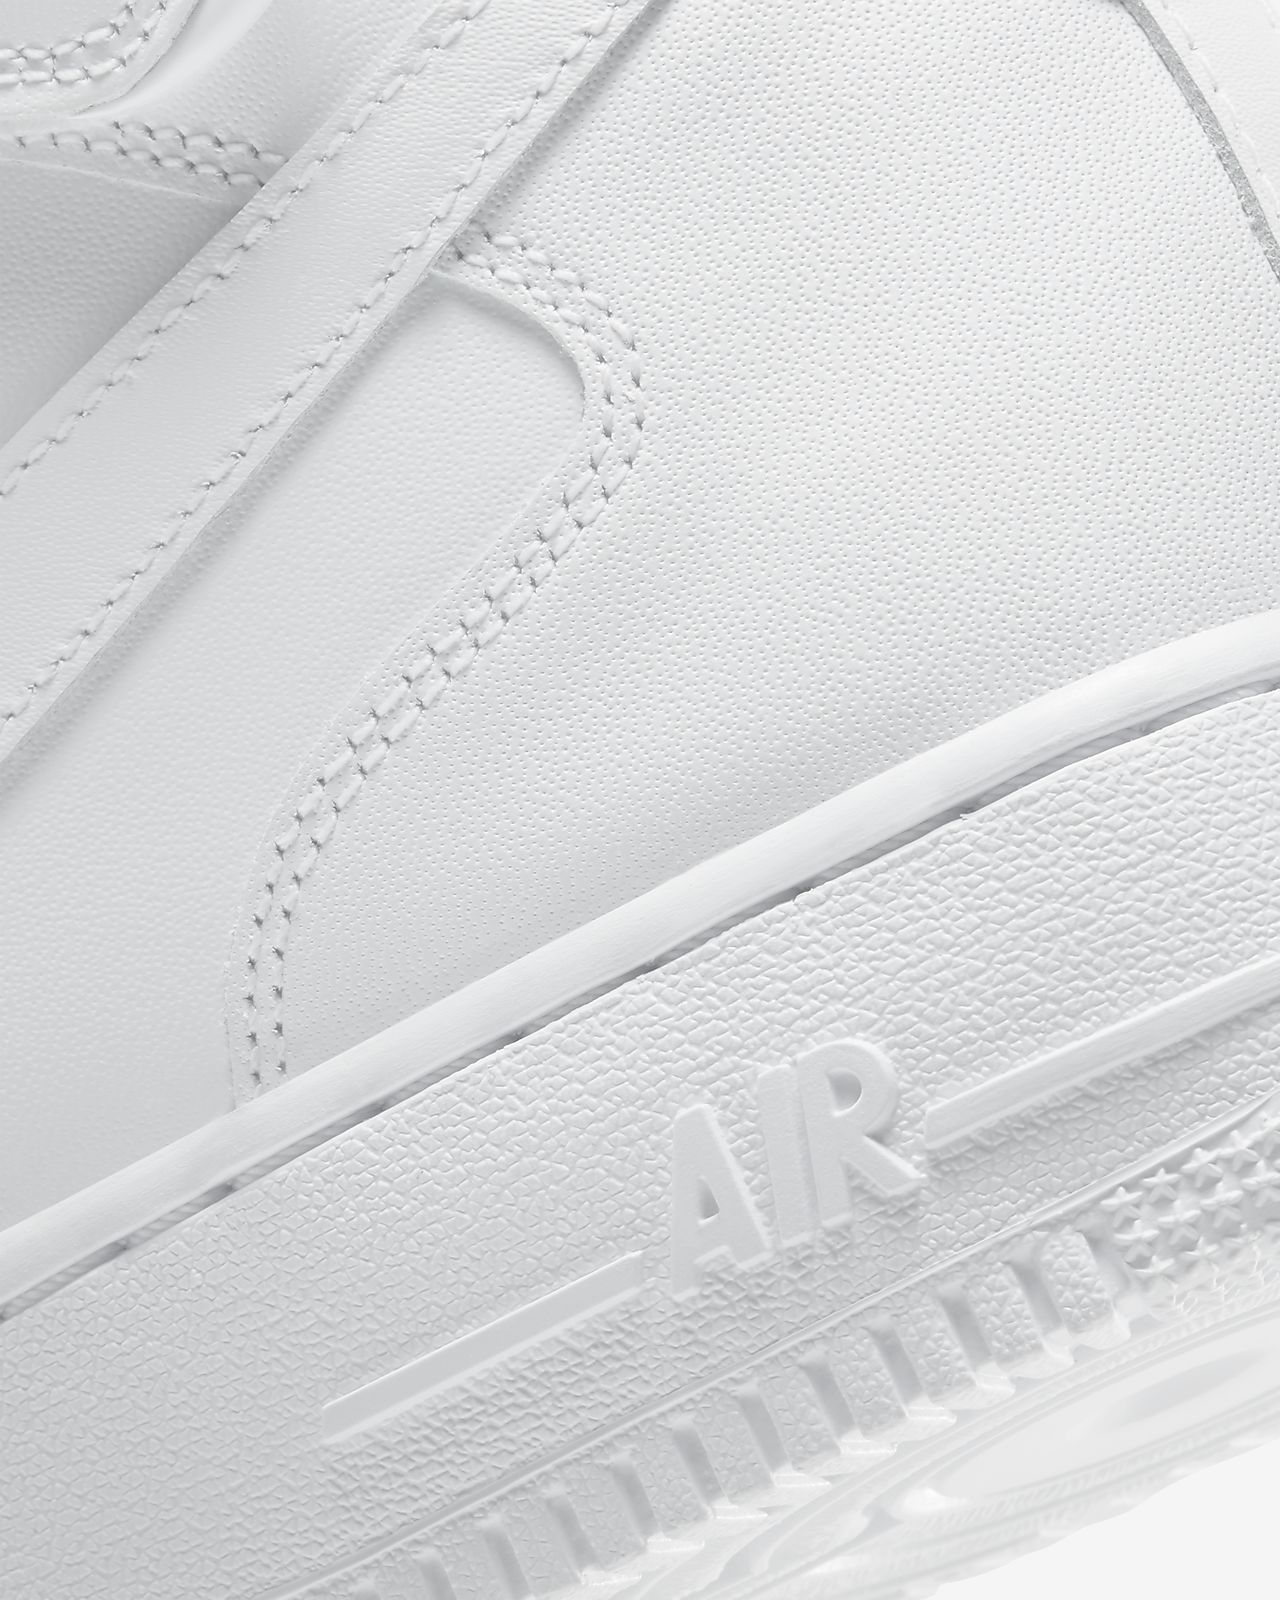 Nike Air Force 1 Mid '07 Trainers In White 315123 111 Smooth